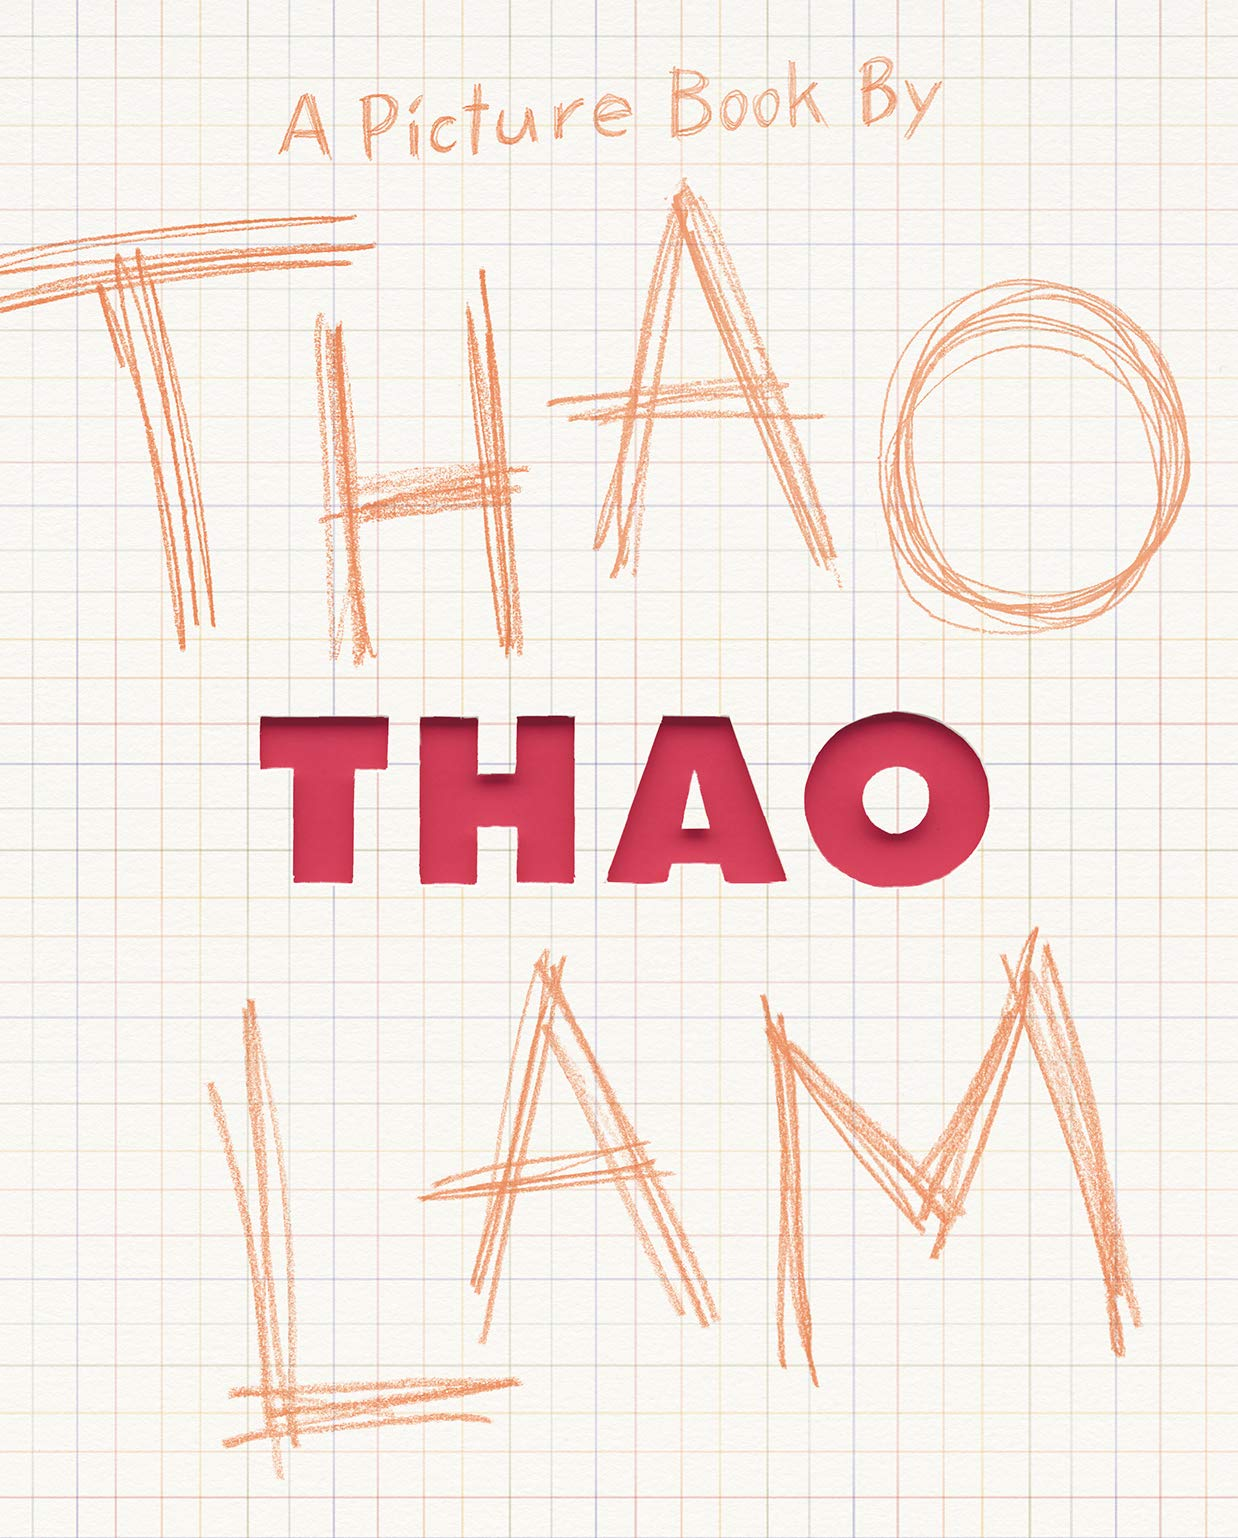 Thao: A Picture Book: Amazon.co.uk: Lam, Thao: Books